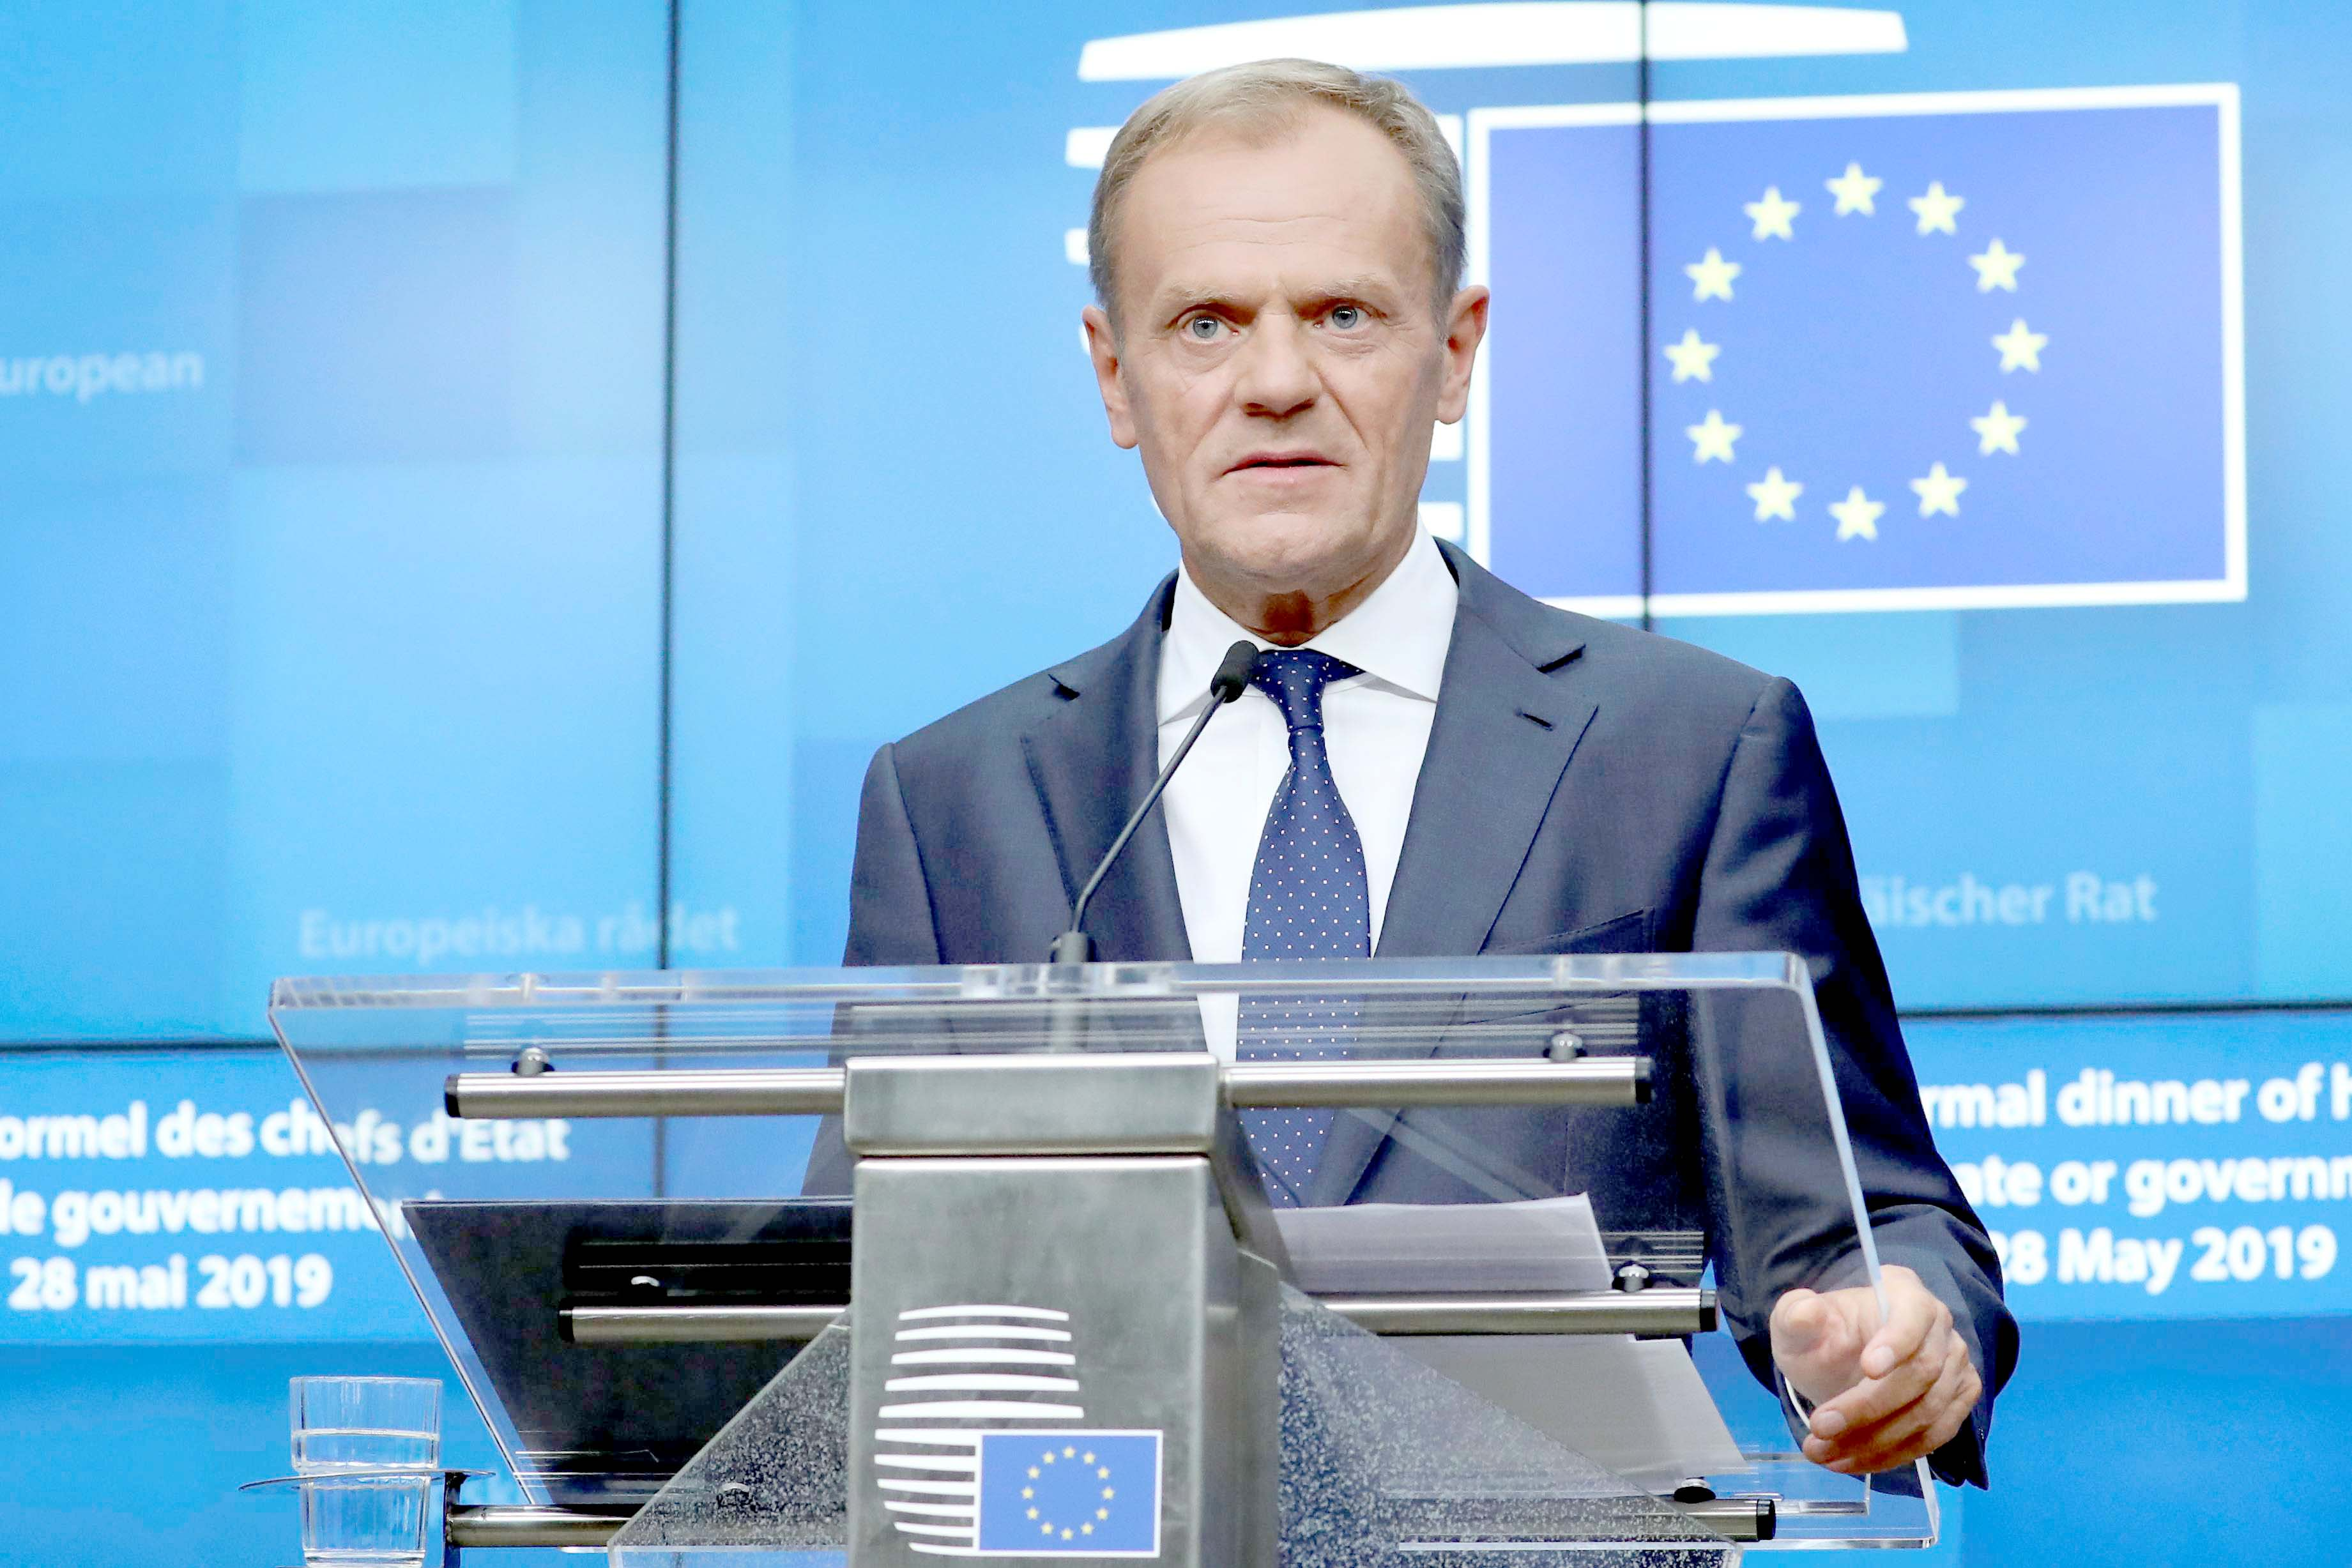 Shifting politics. European Council President Donald Tusk holds a news conference after a European Union leaders summit following the EU elections, in Brussels, May 28. (Reuters)